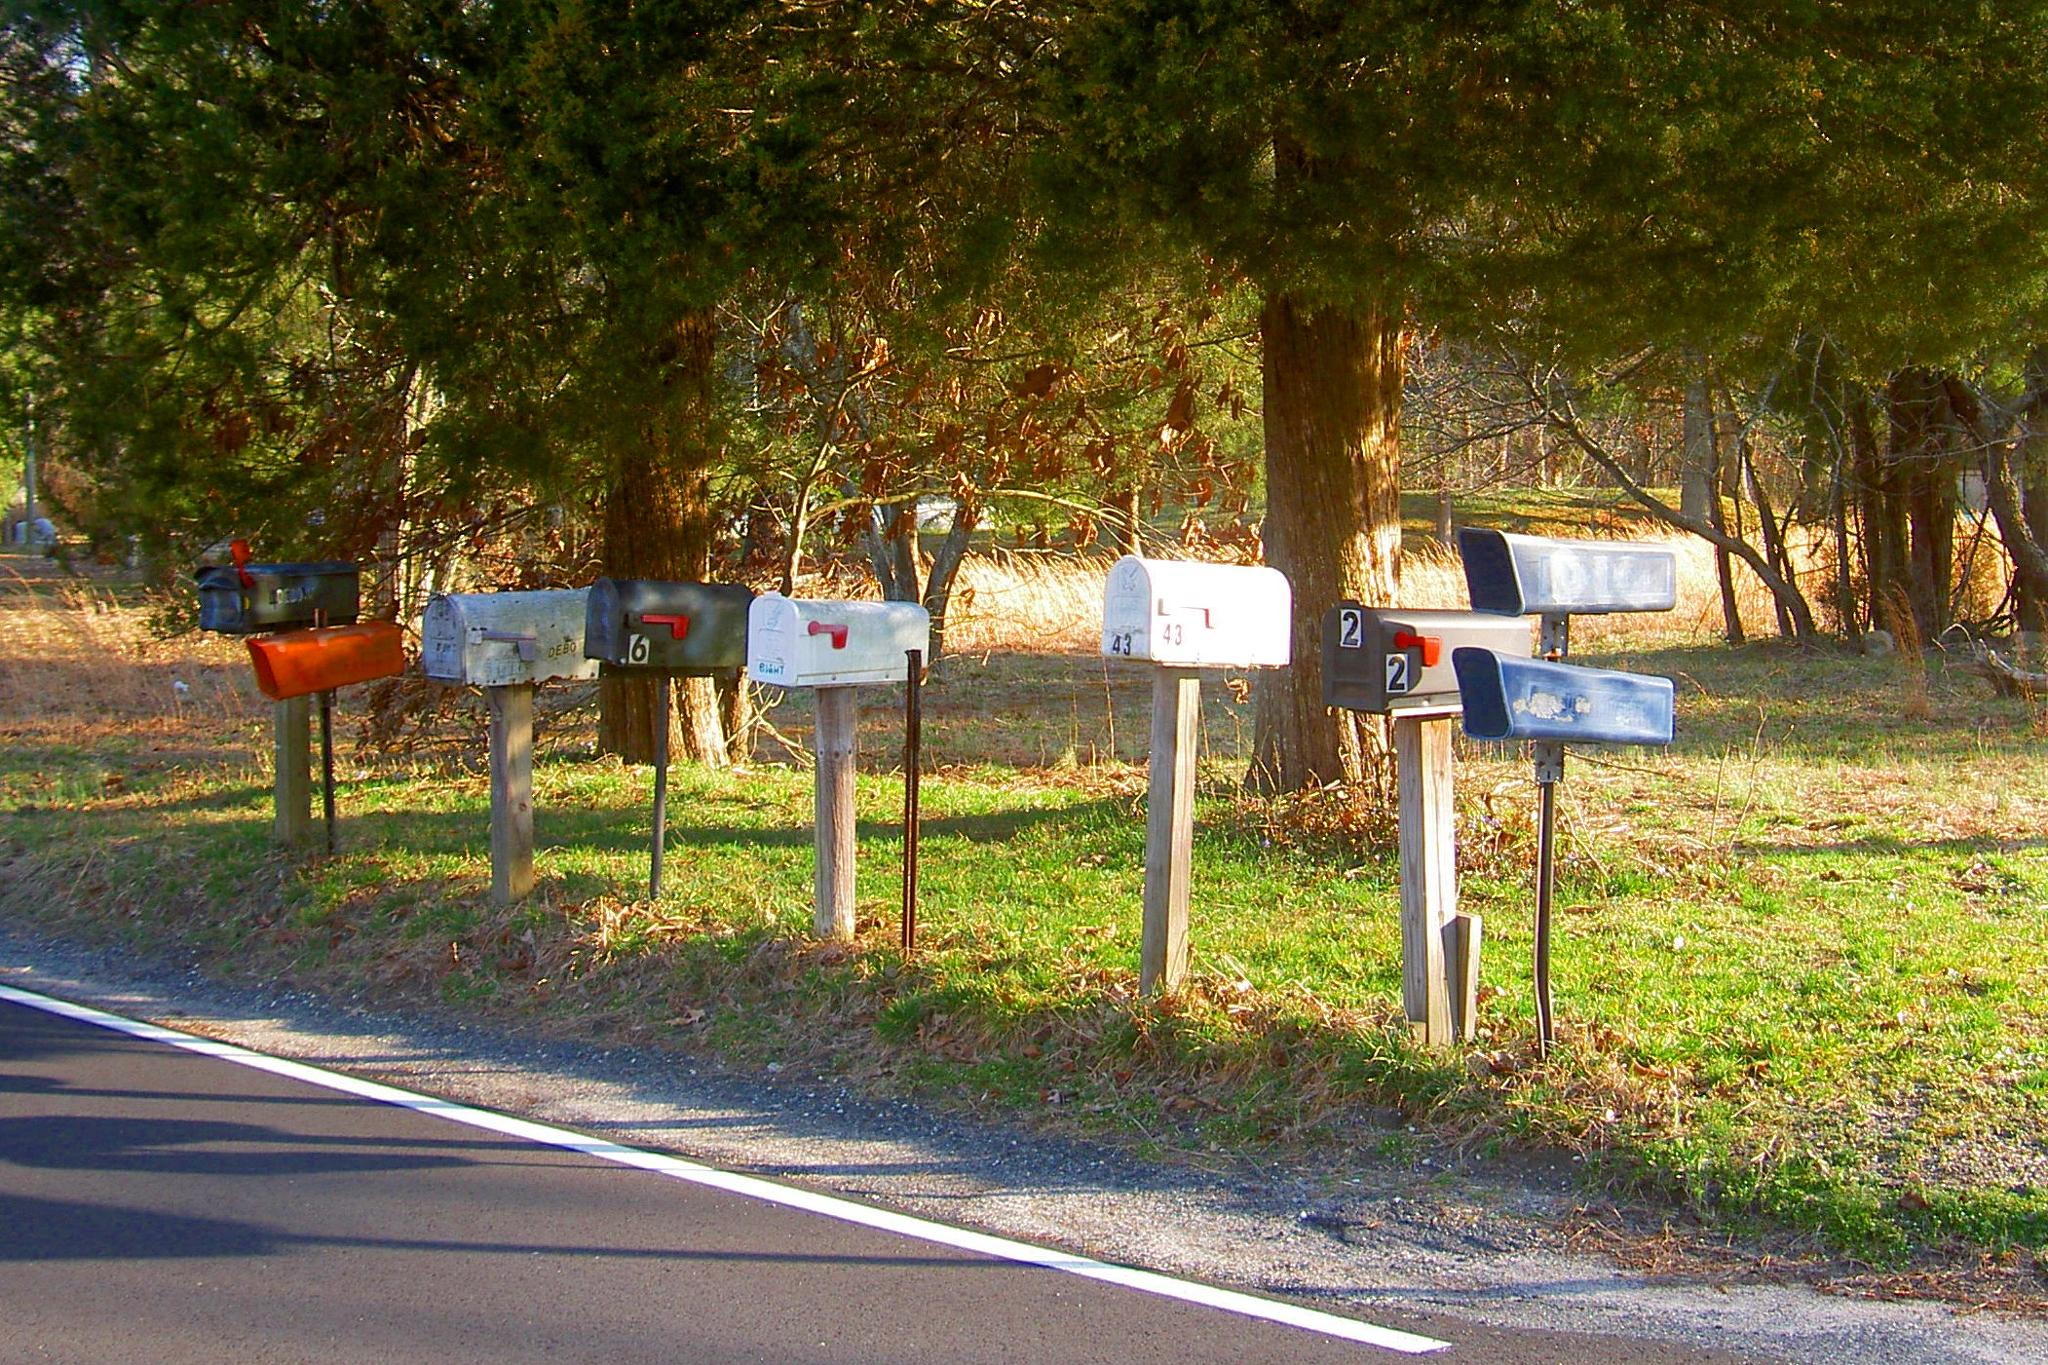 Waiting for Delivery by Terri Scache Harris